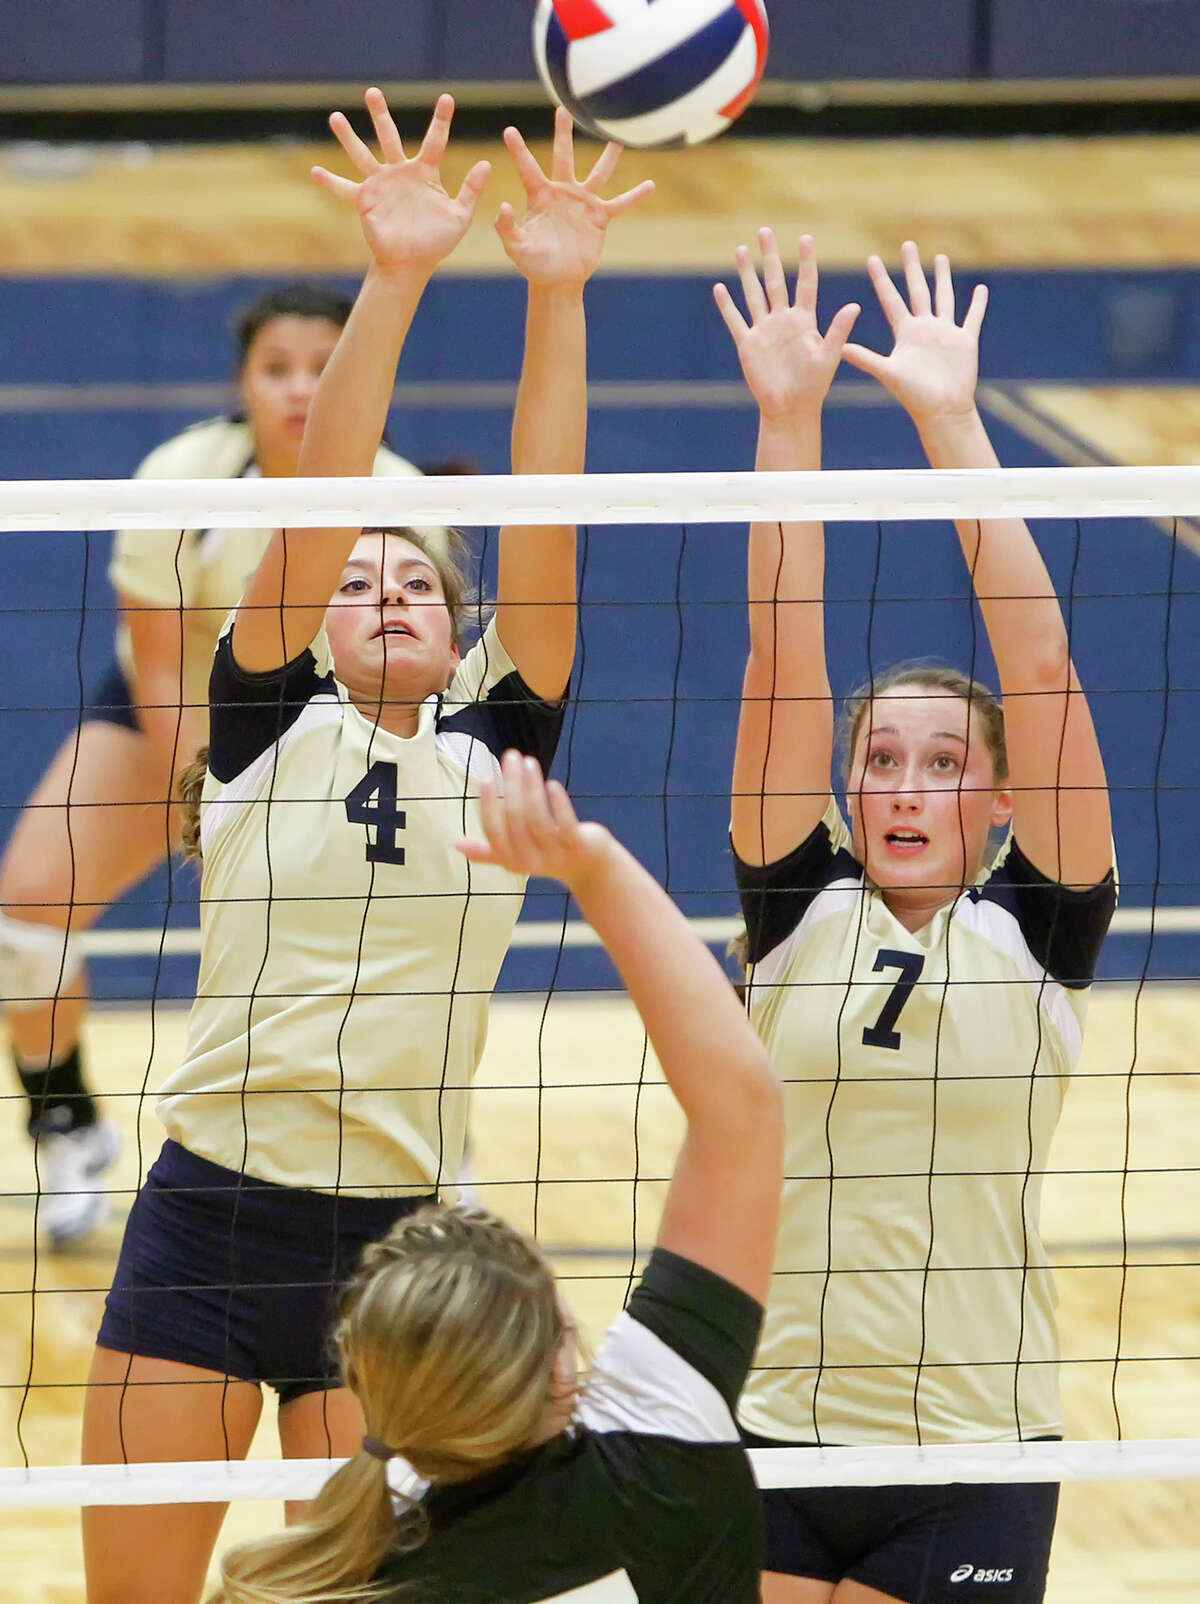 O'Connor's McKenzie Kelley (left) and Laura Fox leap to try to block a shot by Clark's Megan Pattison during their District 27-5A volleyball match at Paul Taylor Field House on Tuesday, Aug. 27, 2013. O